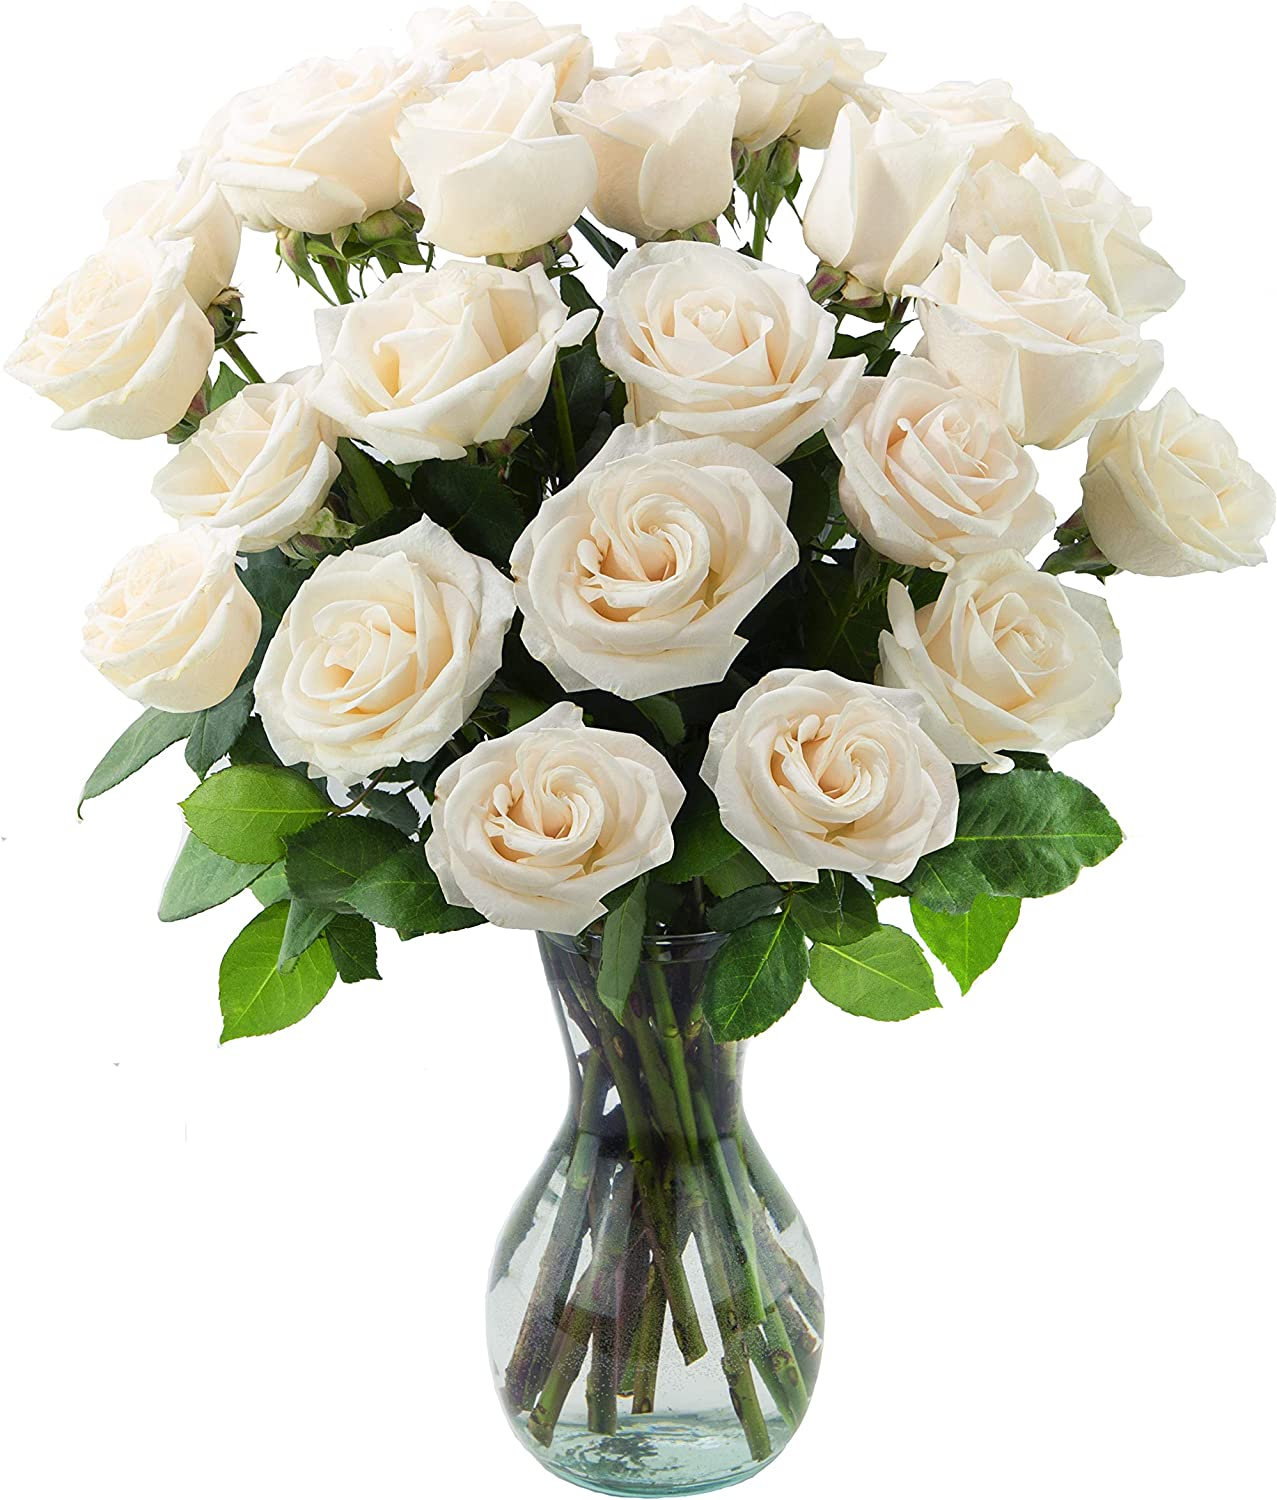 Super popular specialty store Delivery by Monday September 27th Cu Arabella Fresh Bouquets Daily bargain sale 24